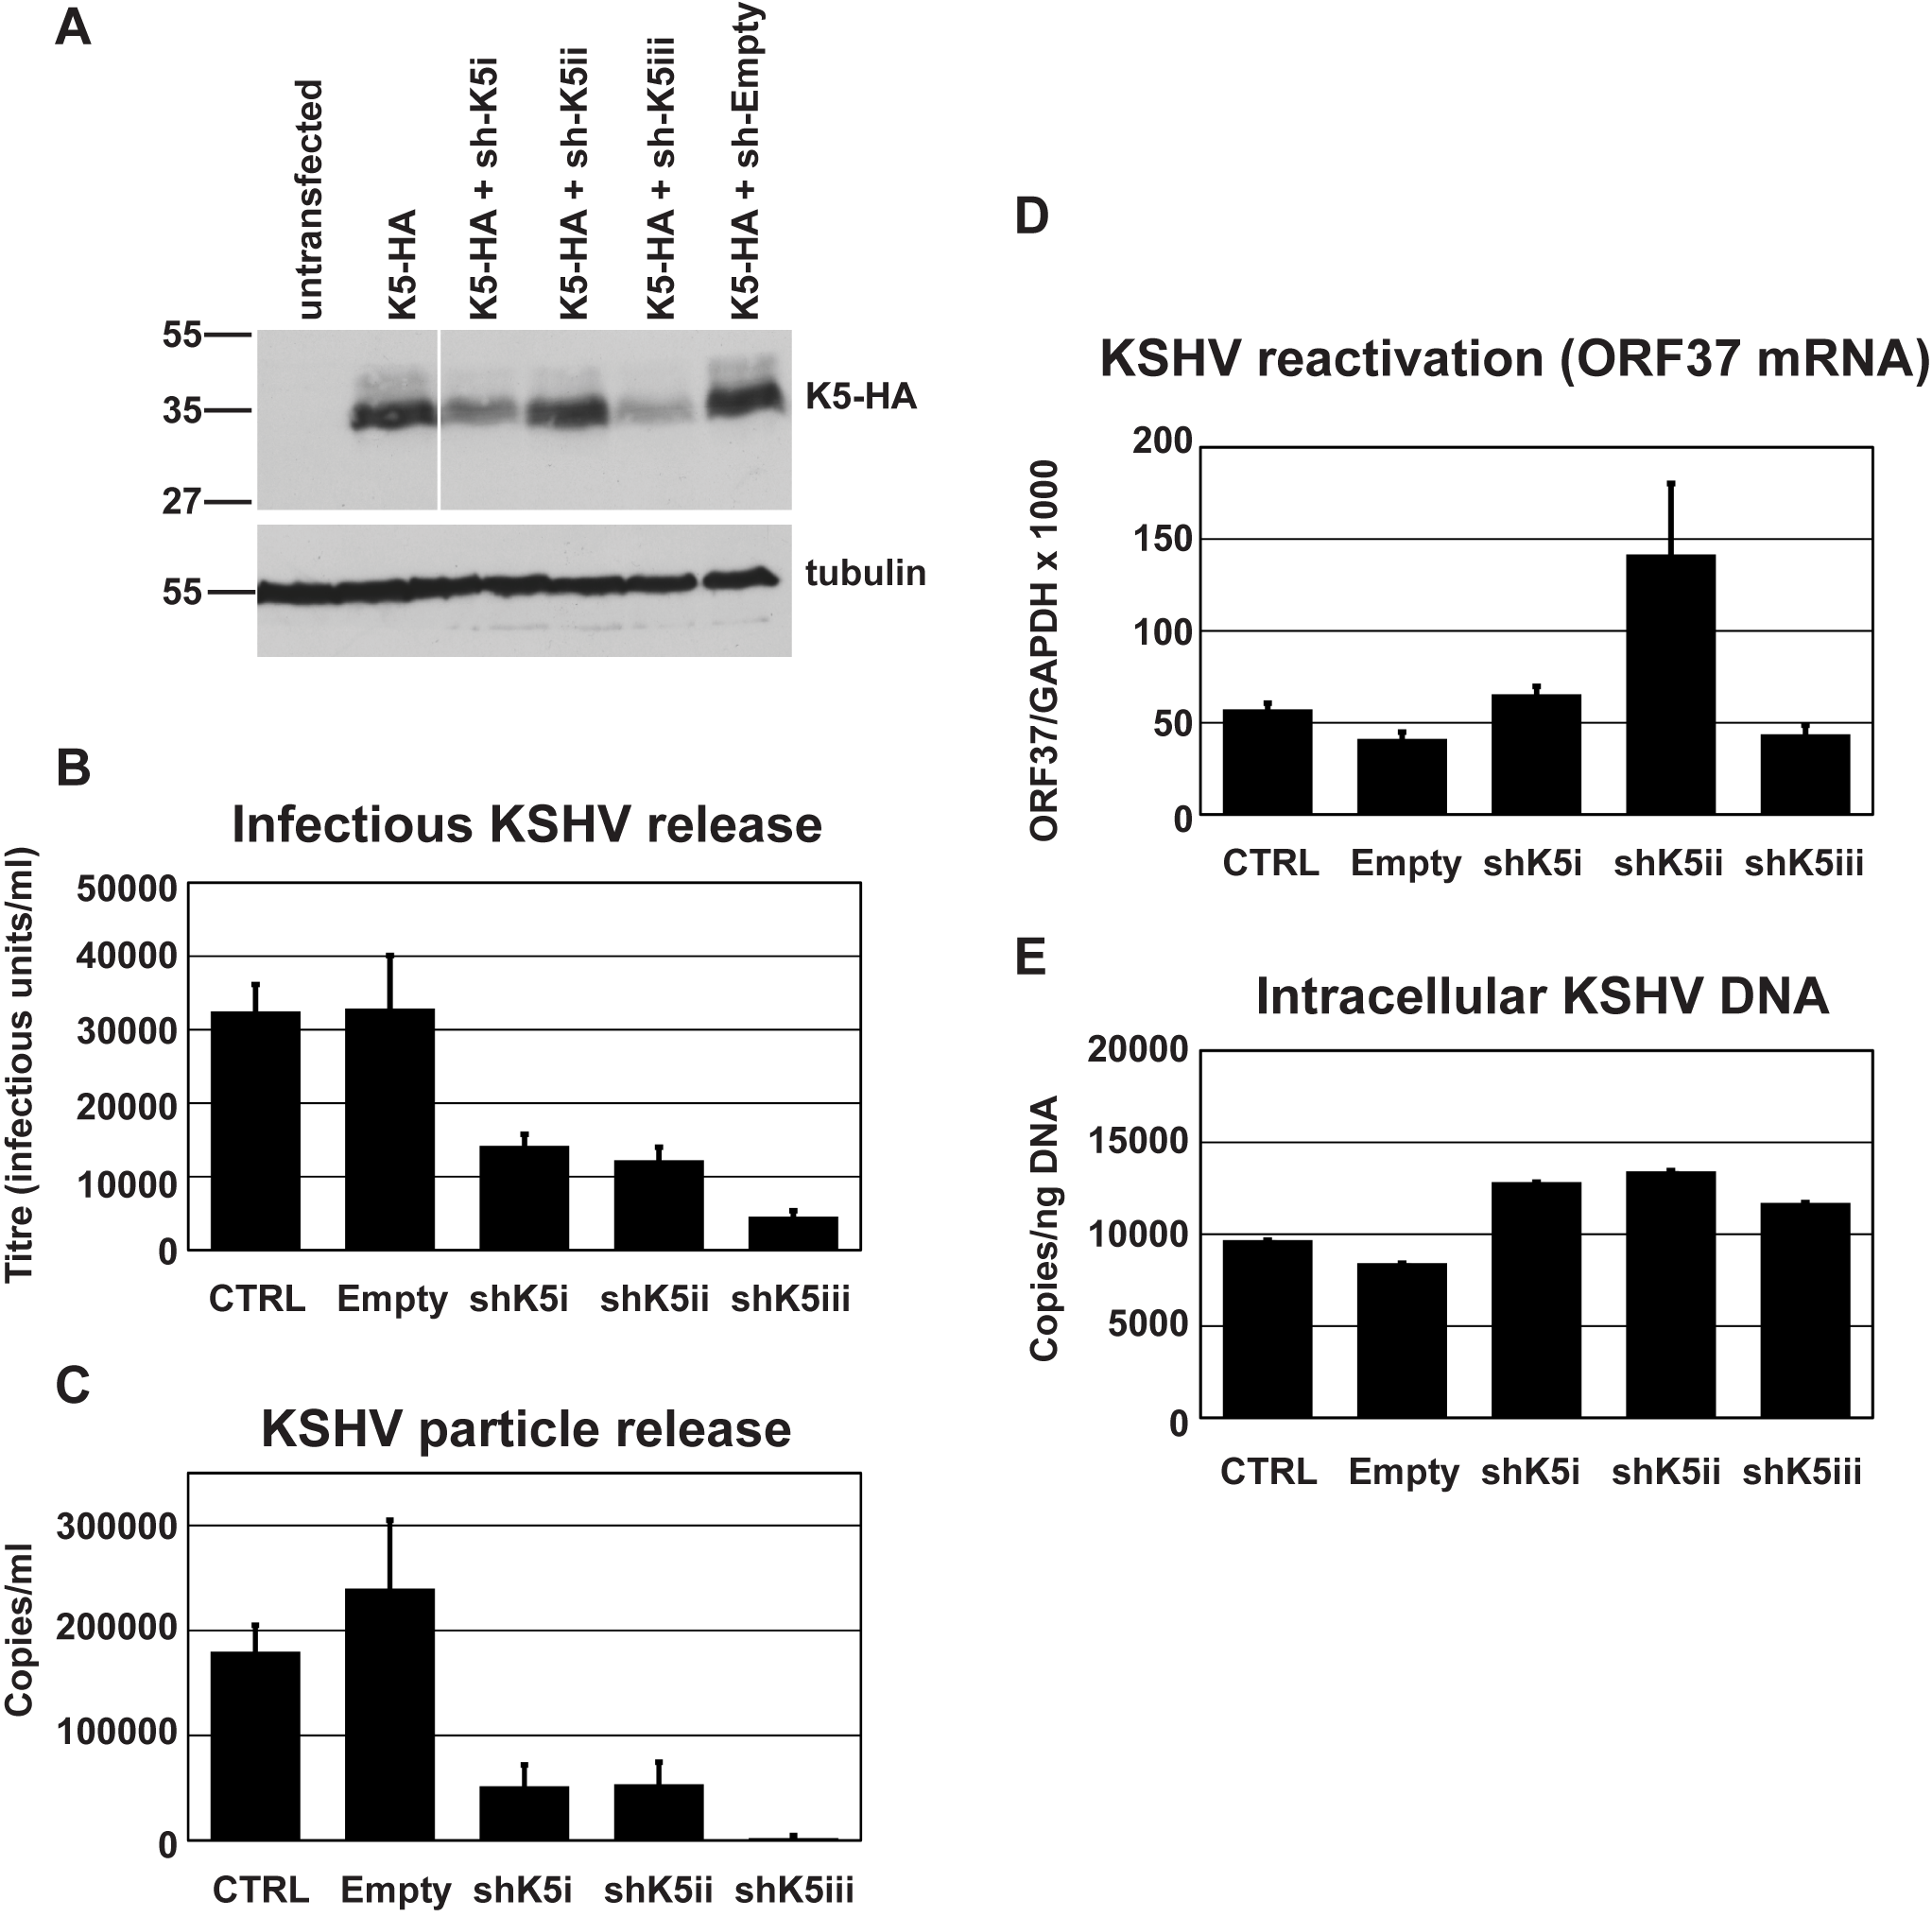 RNAi-depletion of K5 during lytic replication suppresses KSHV particle release.